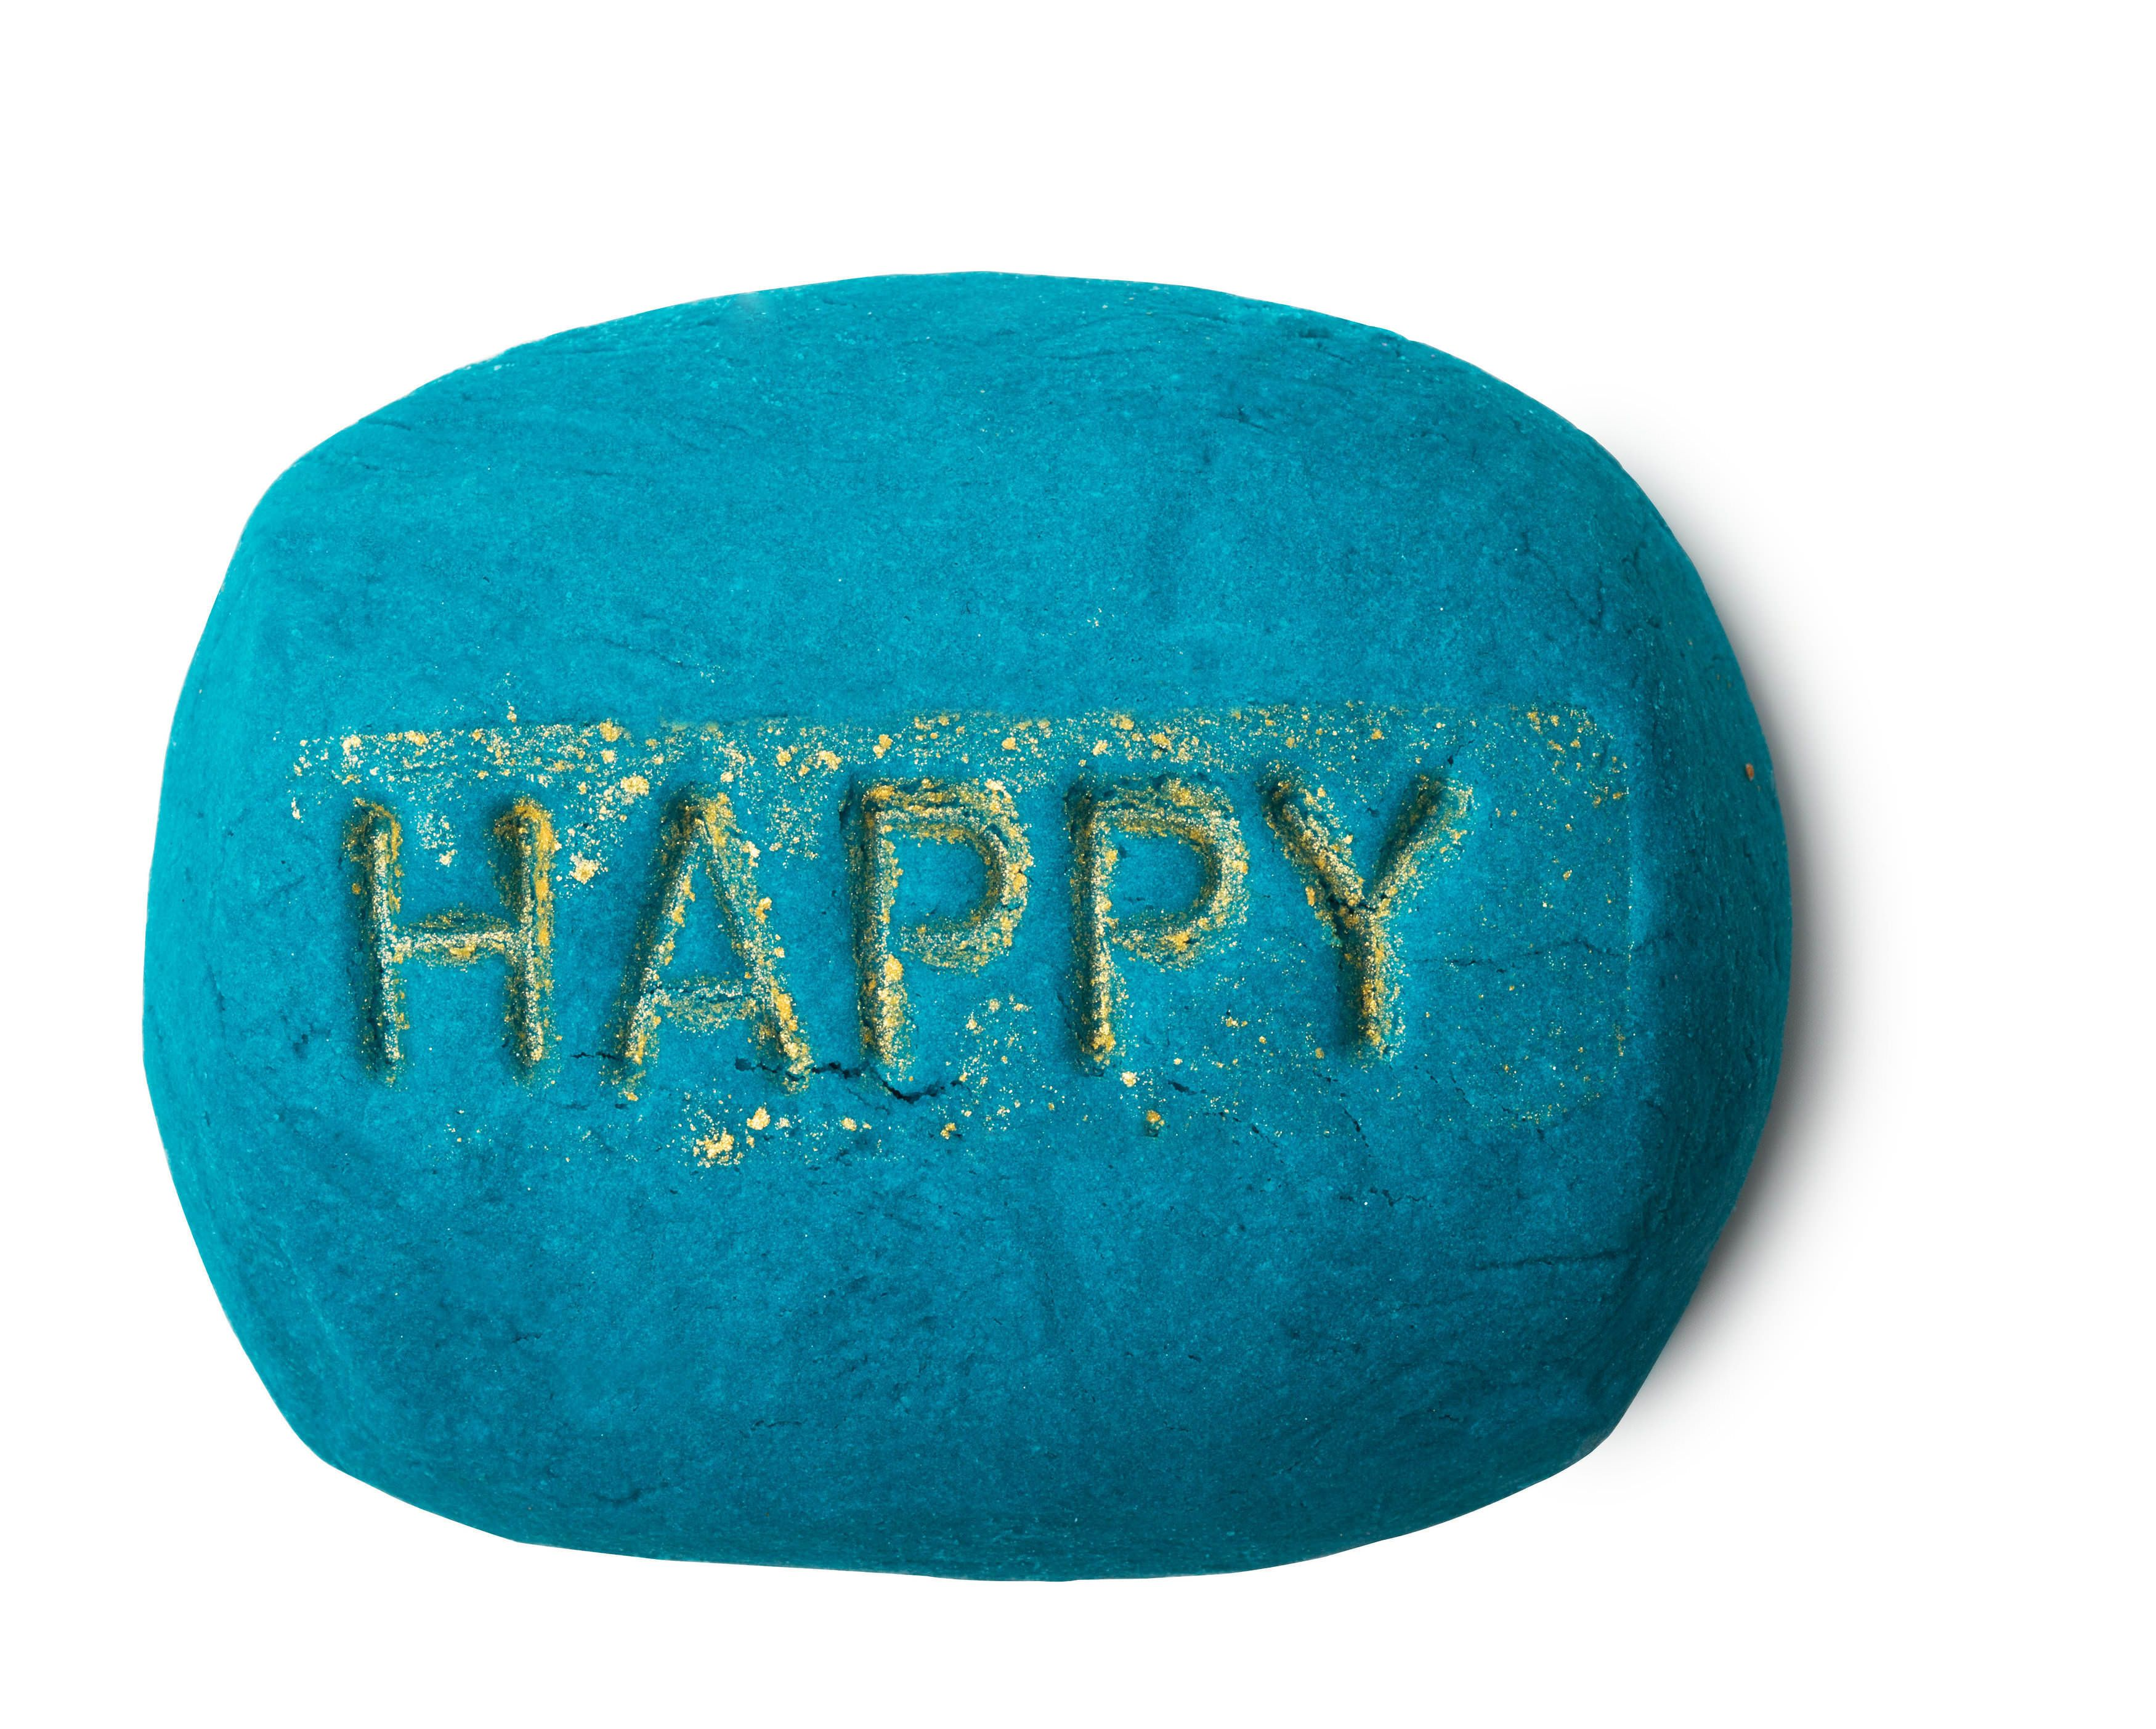 Happy bubble barbright blue water and mounds of lovely